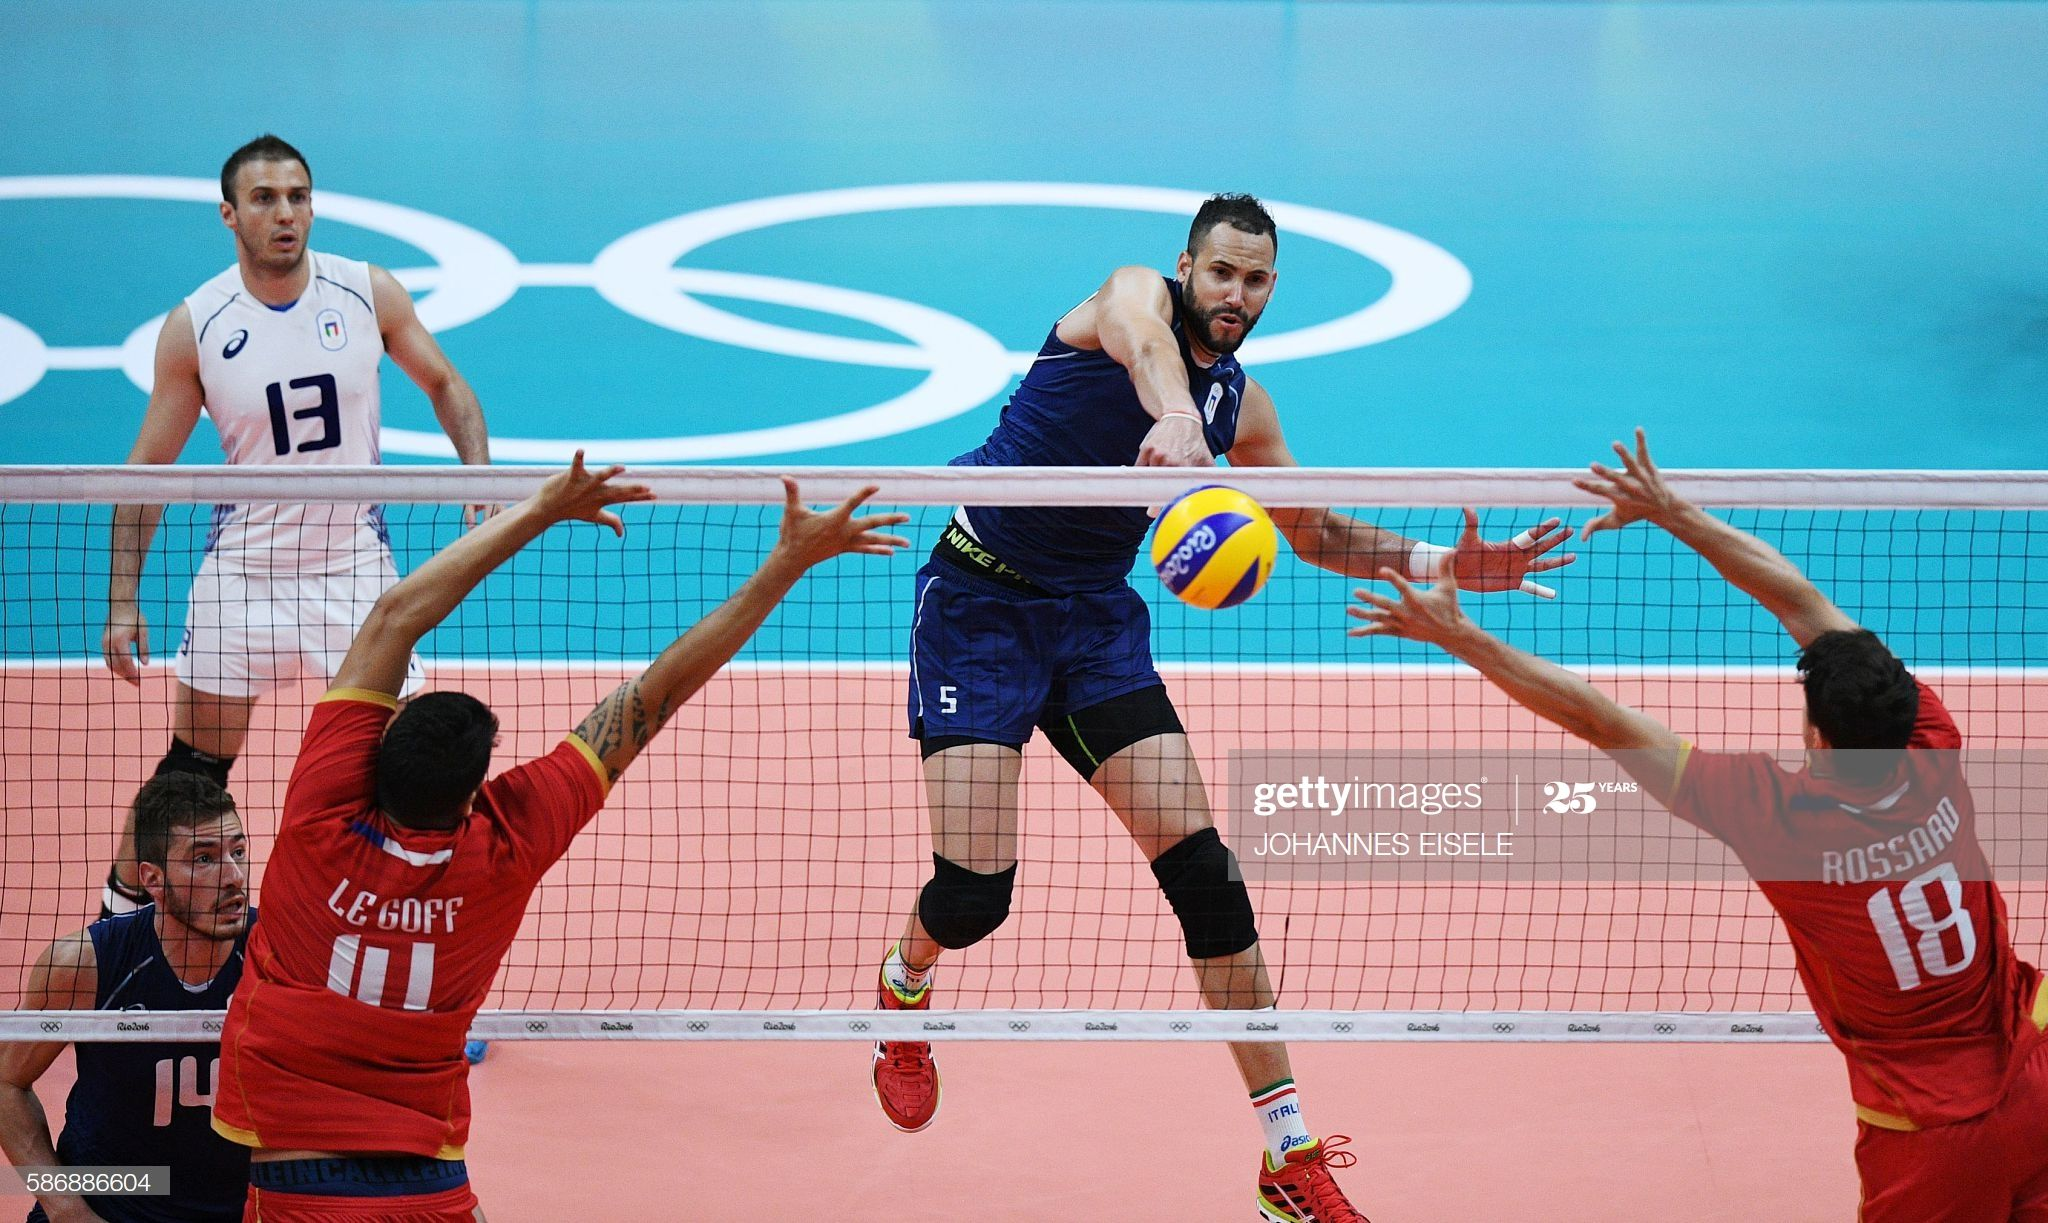 Italy S Osmany Juantorena Spikes The Ball During The Men S Qualifying In 2020 Rio Olympics 2016 Olympic Volleyball Olympics 2016